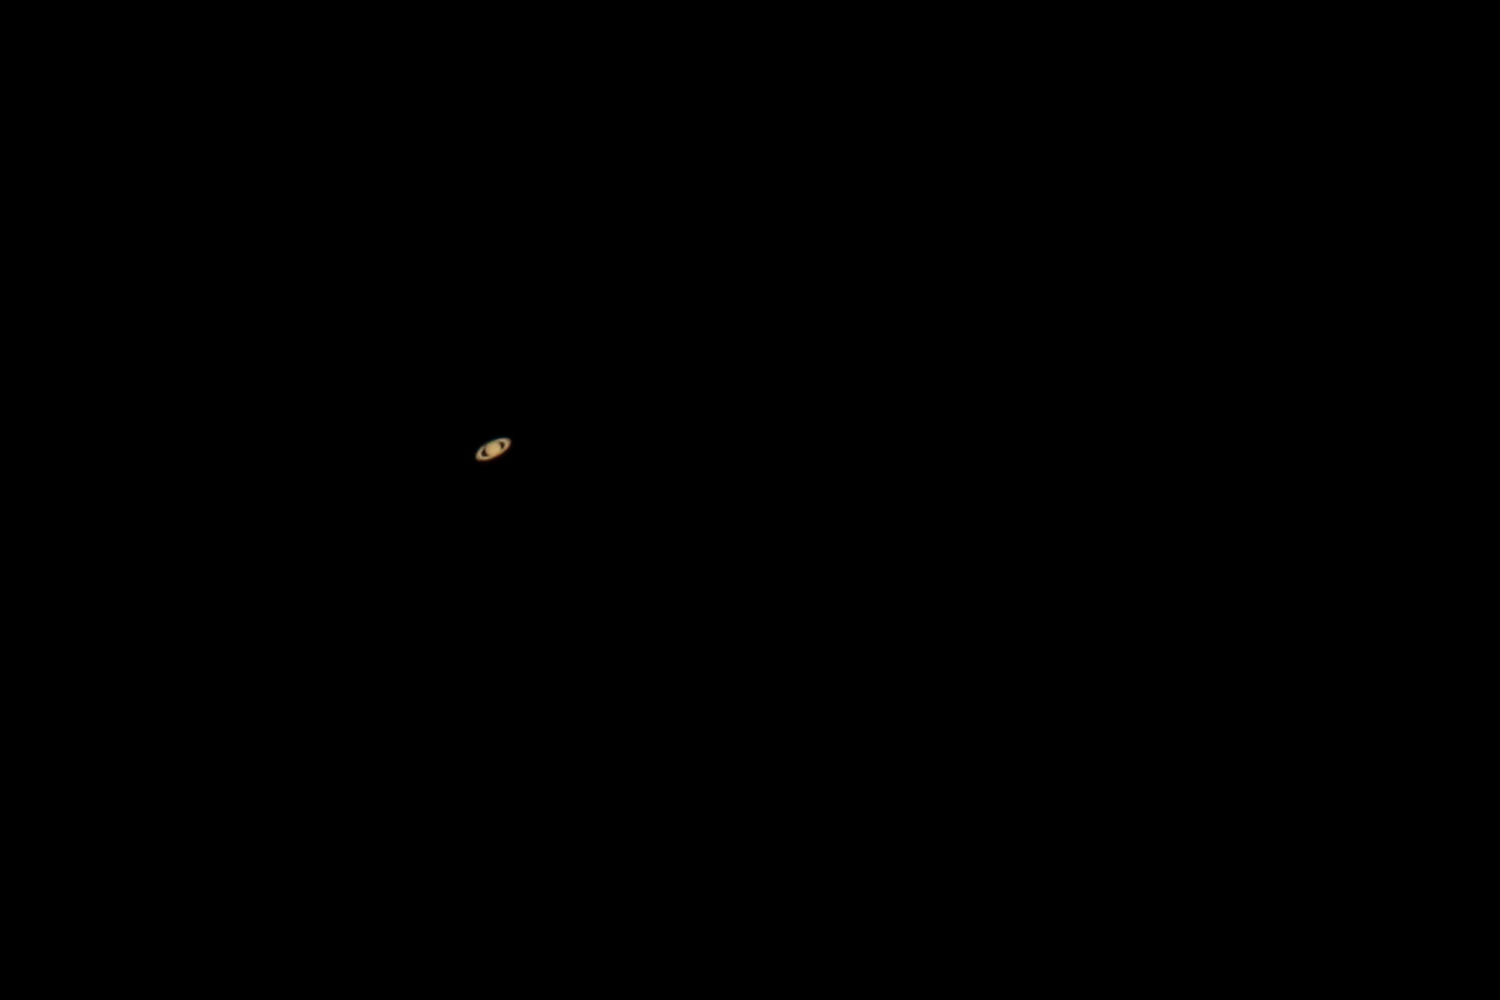 Saturn, single shot!    1/250 s - ISO 1600 - @ 1920 mm - EOS 1200D + Dobson SkyWatcher 250/1200 f/5 - Mac OS + Canon DPP 4 - 2000x1333 px. Domagnano, Rep. of San Marino, 07 August 2015.